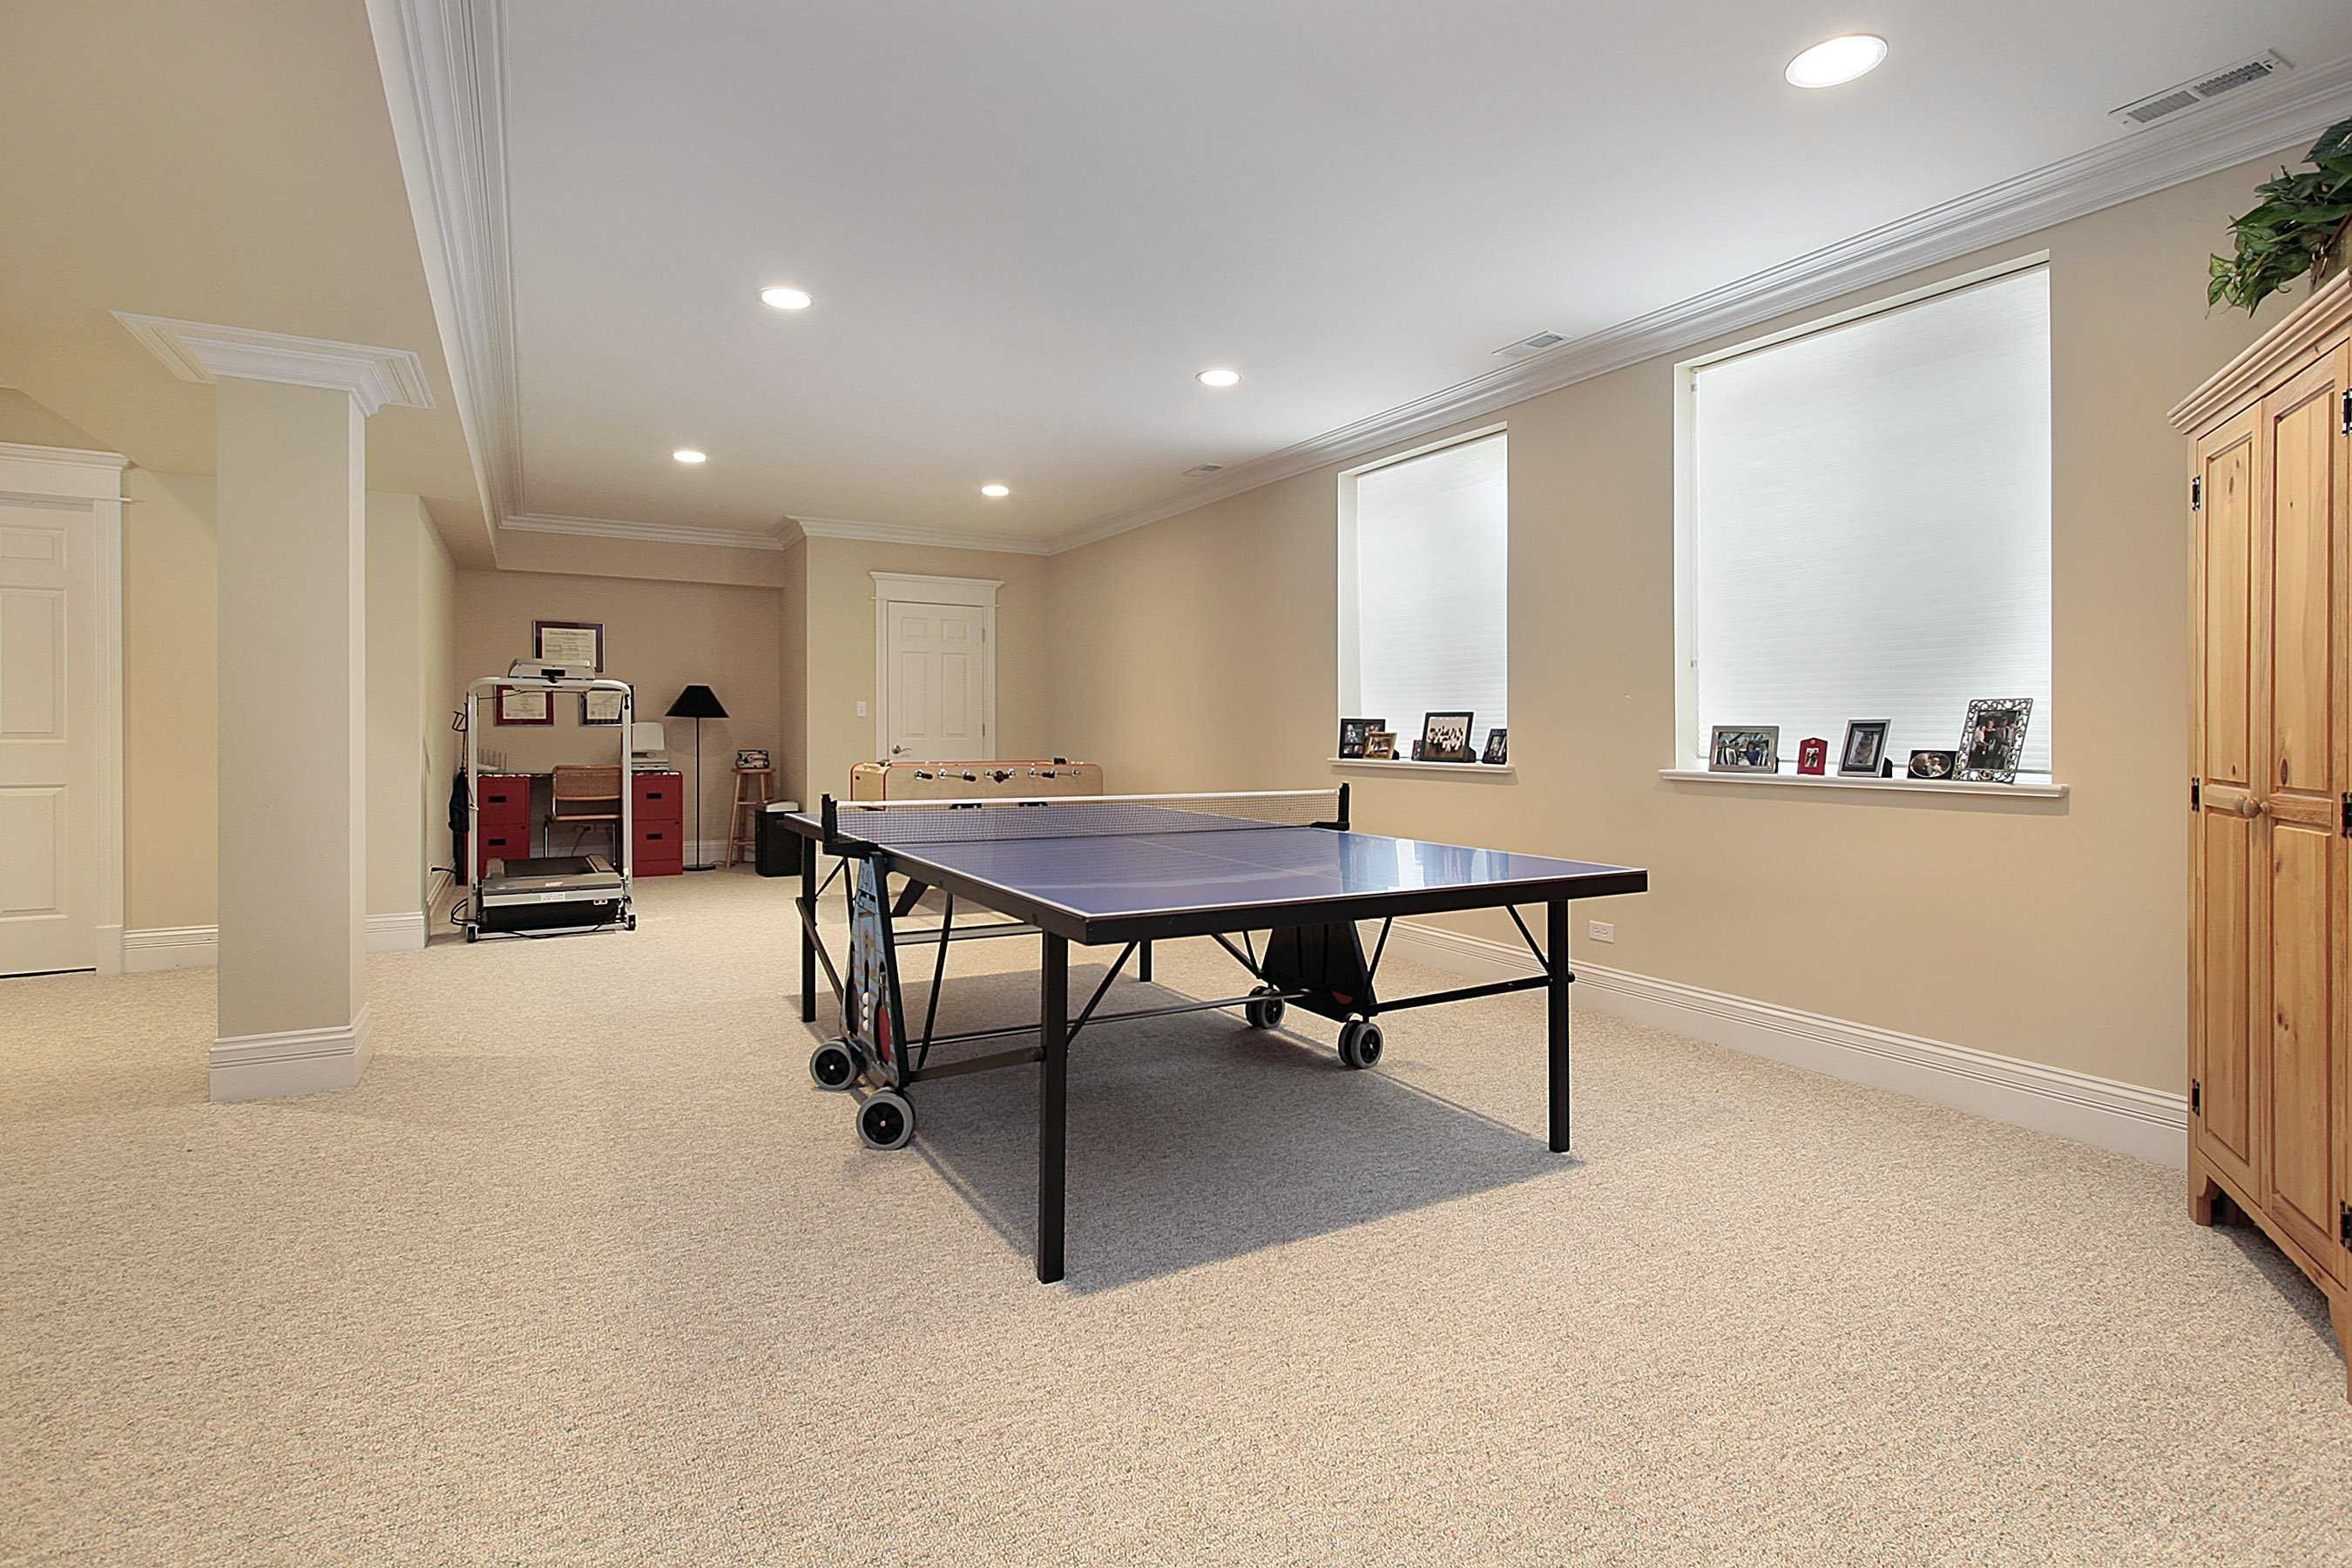 Best ideas about Remodel Basement Ideas . Save or Pin 30 Basement Remodeling Ideas & Inspiration Now.